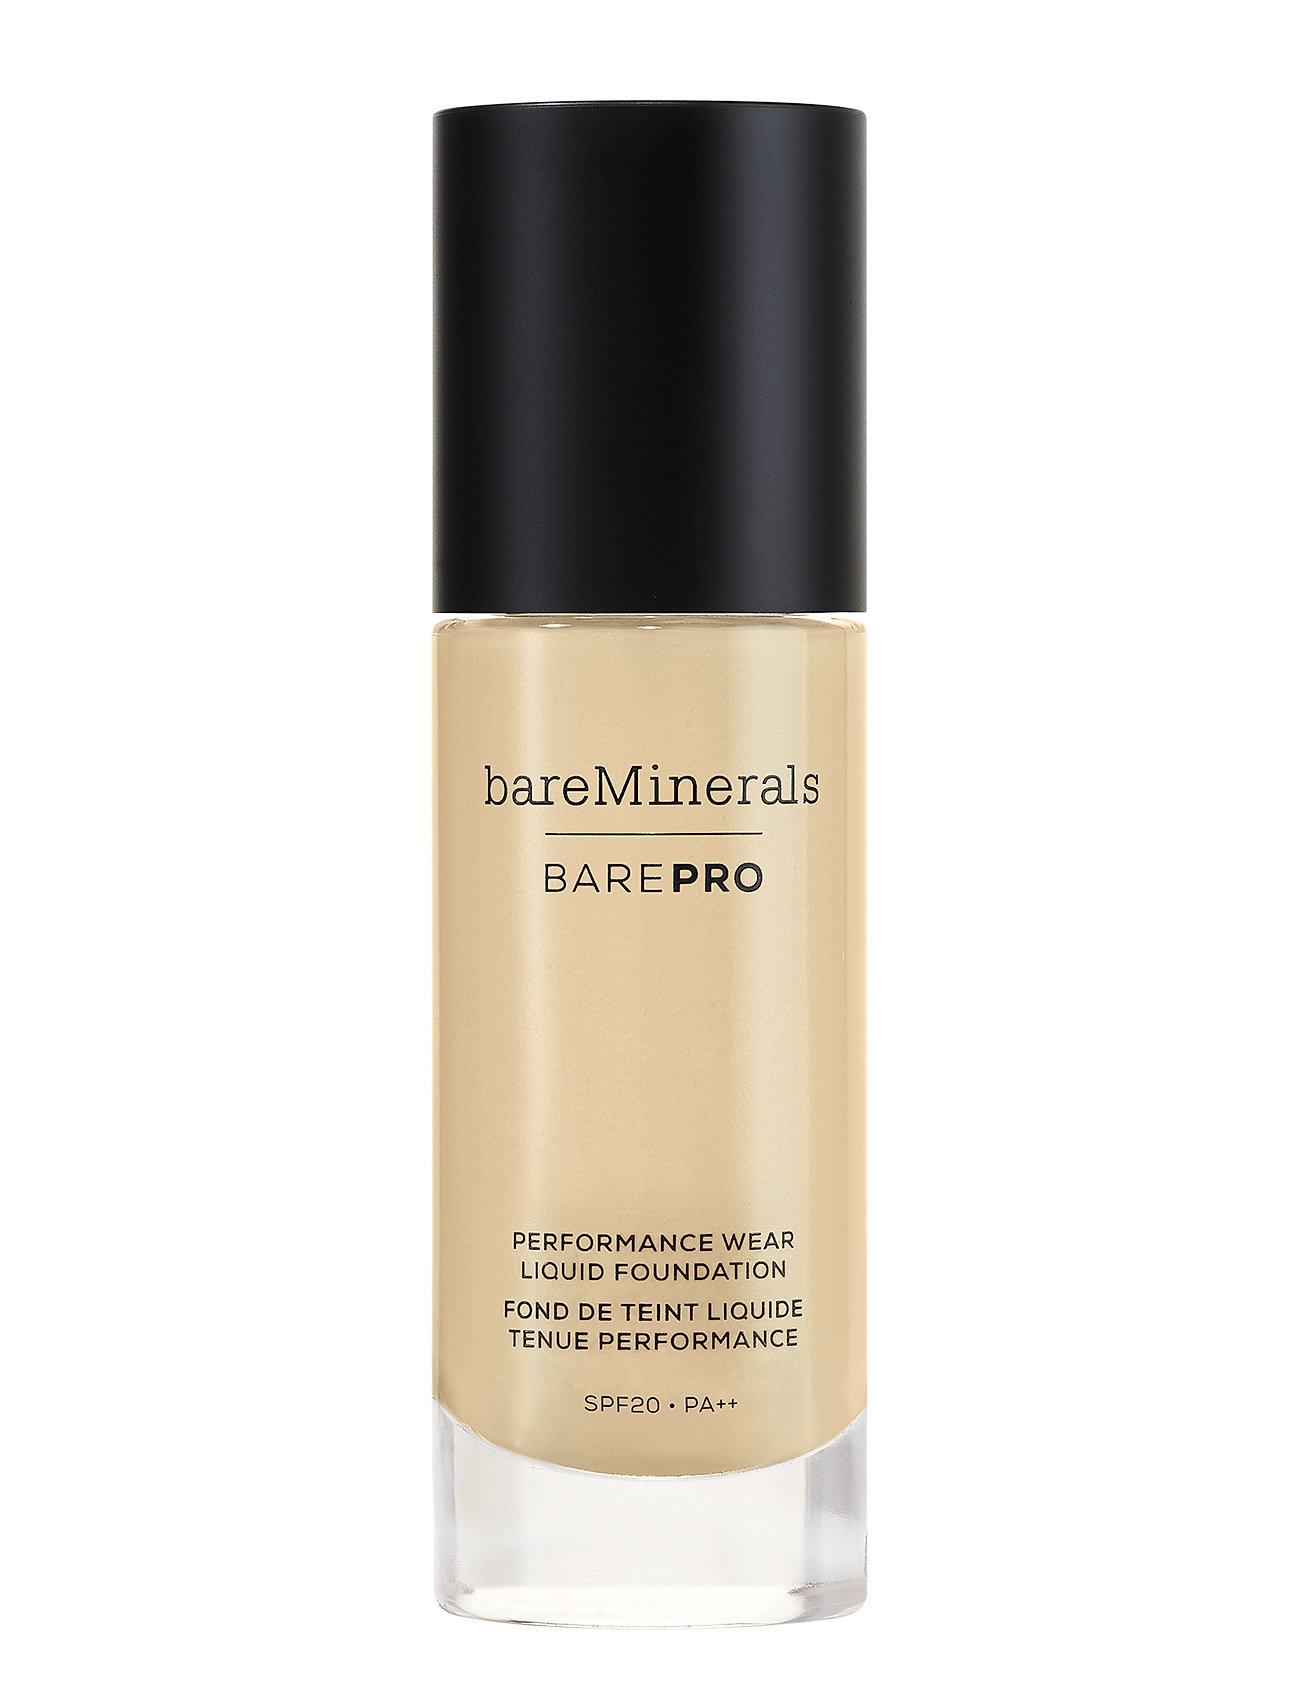 Image of Barepro Performance Wear Liquid Foundation Spf 20 Foundation Makeup BareMinerals (3067521533)